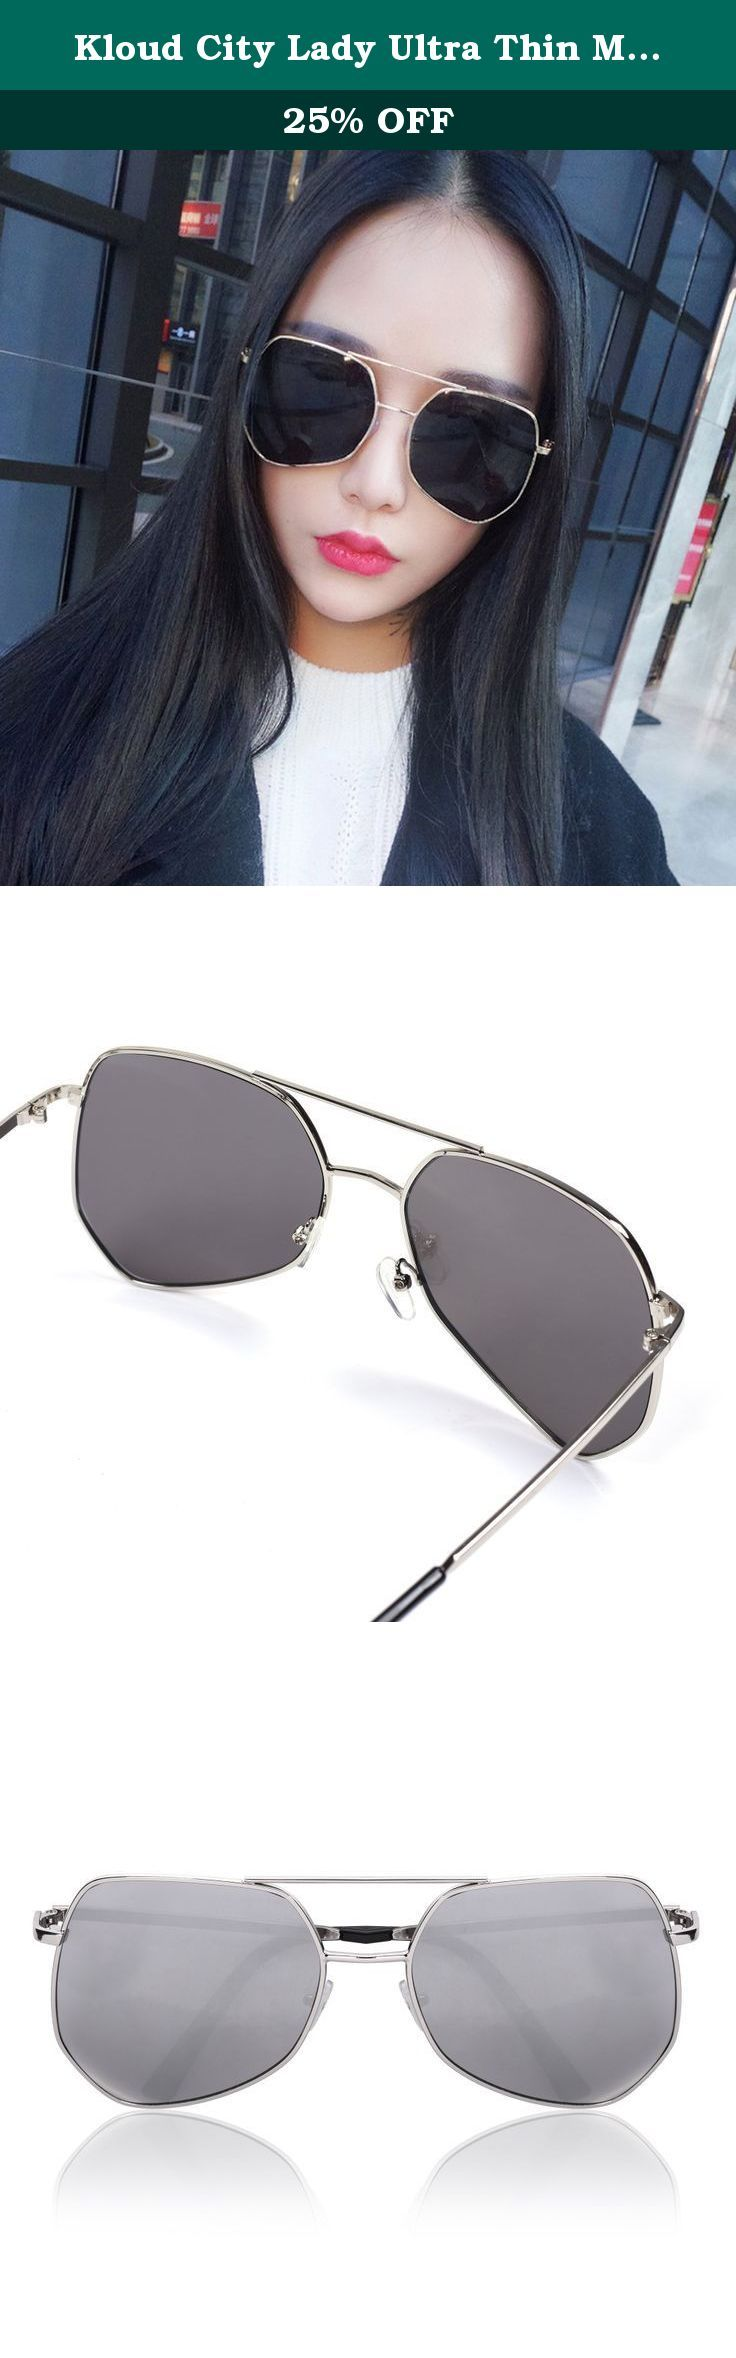 Kloud City Lady Ultra Thin Metal Frame Flat Top Pilot Sunglasses Clothing. Made with metallic alloy frame and acrylic lens that is ultra light weight yet strong and durable Protect your eyes against harmful UV rays, minimizing damage to your eyesight in the long run, Improve contrast and visual clarity Perfect choice for outdoor sports and activities such as driving, fishing, skiing, travelling, hiking, boating, and is suitable as high fashion accessory and daily wear all year round A...